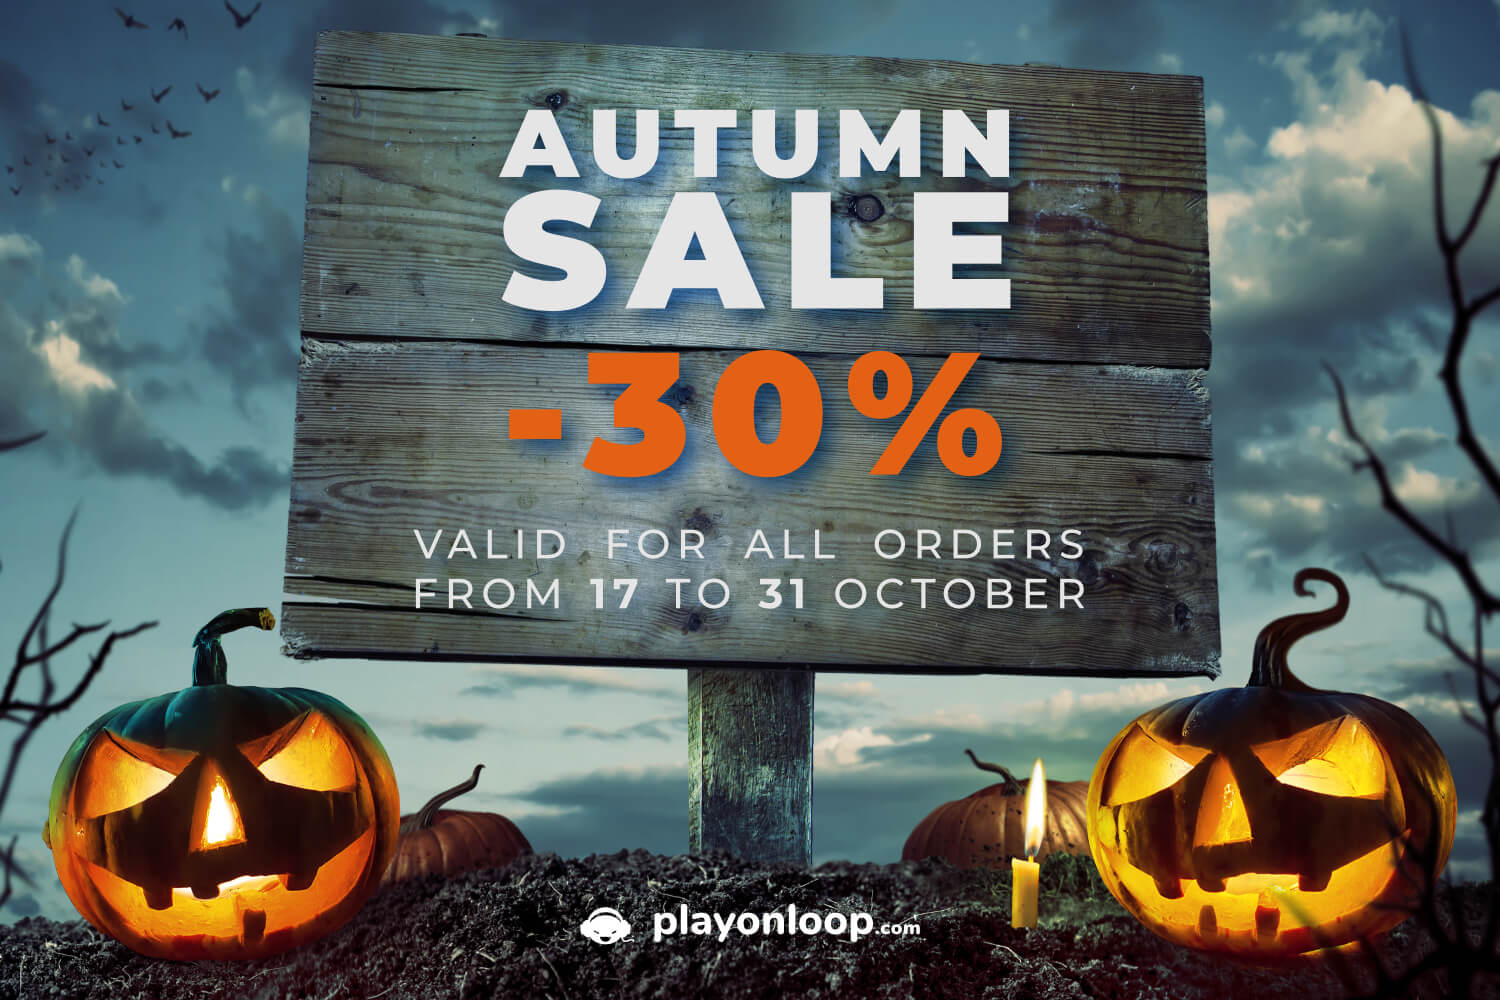 Royalty Free Halloween Music - Autumn Sale 2019